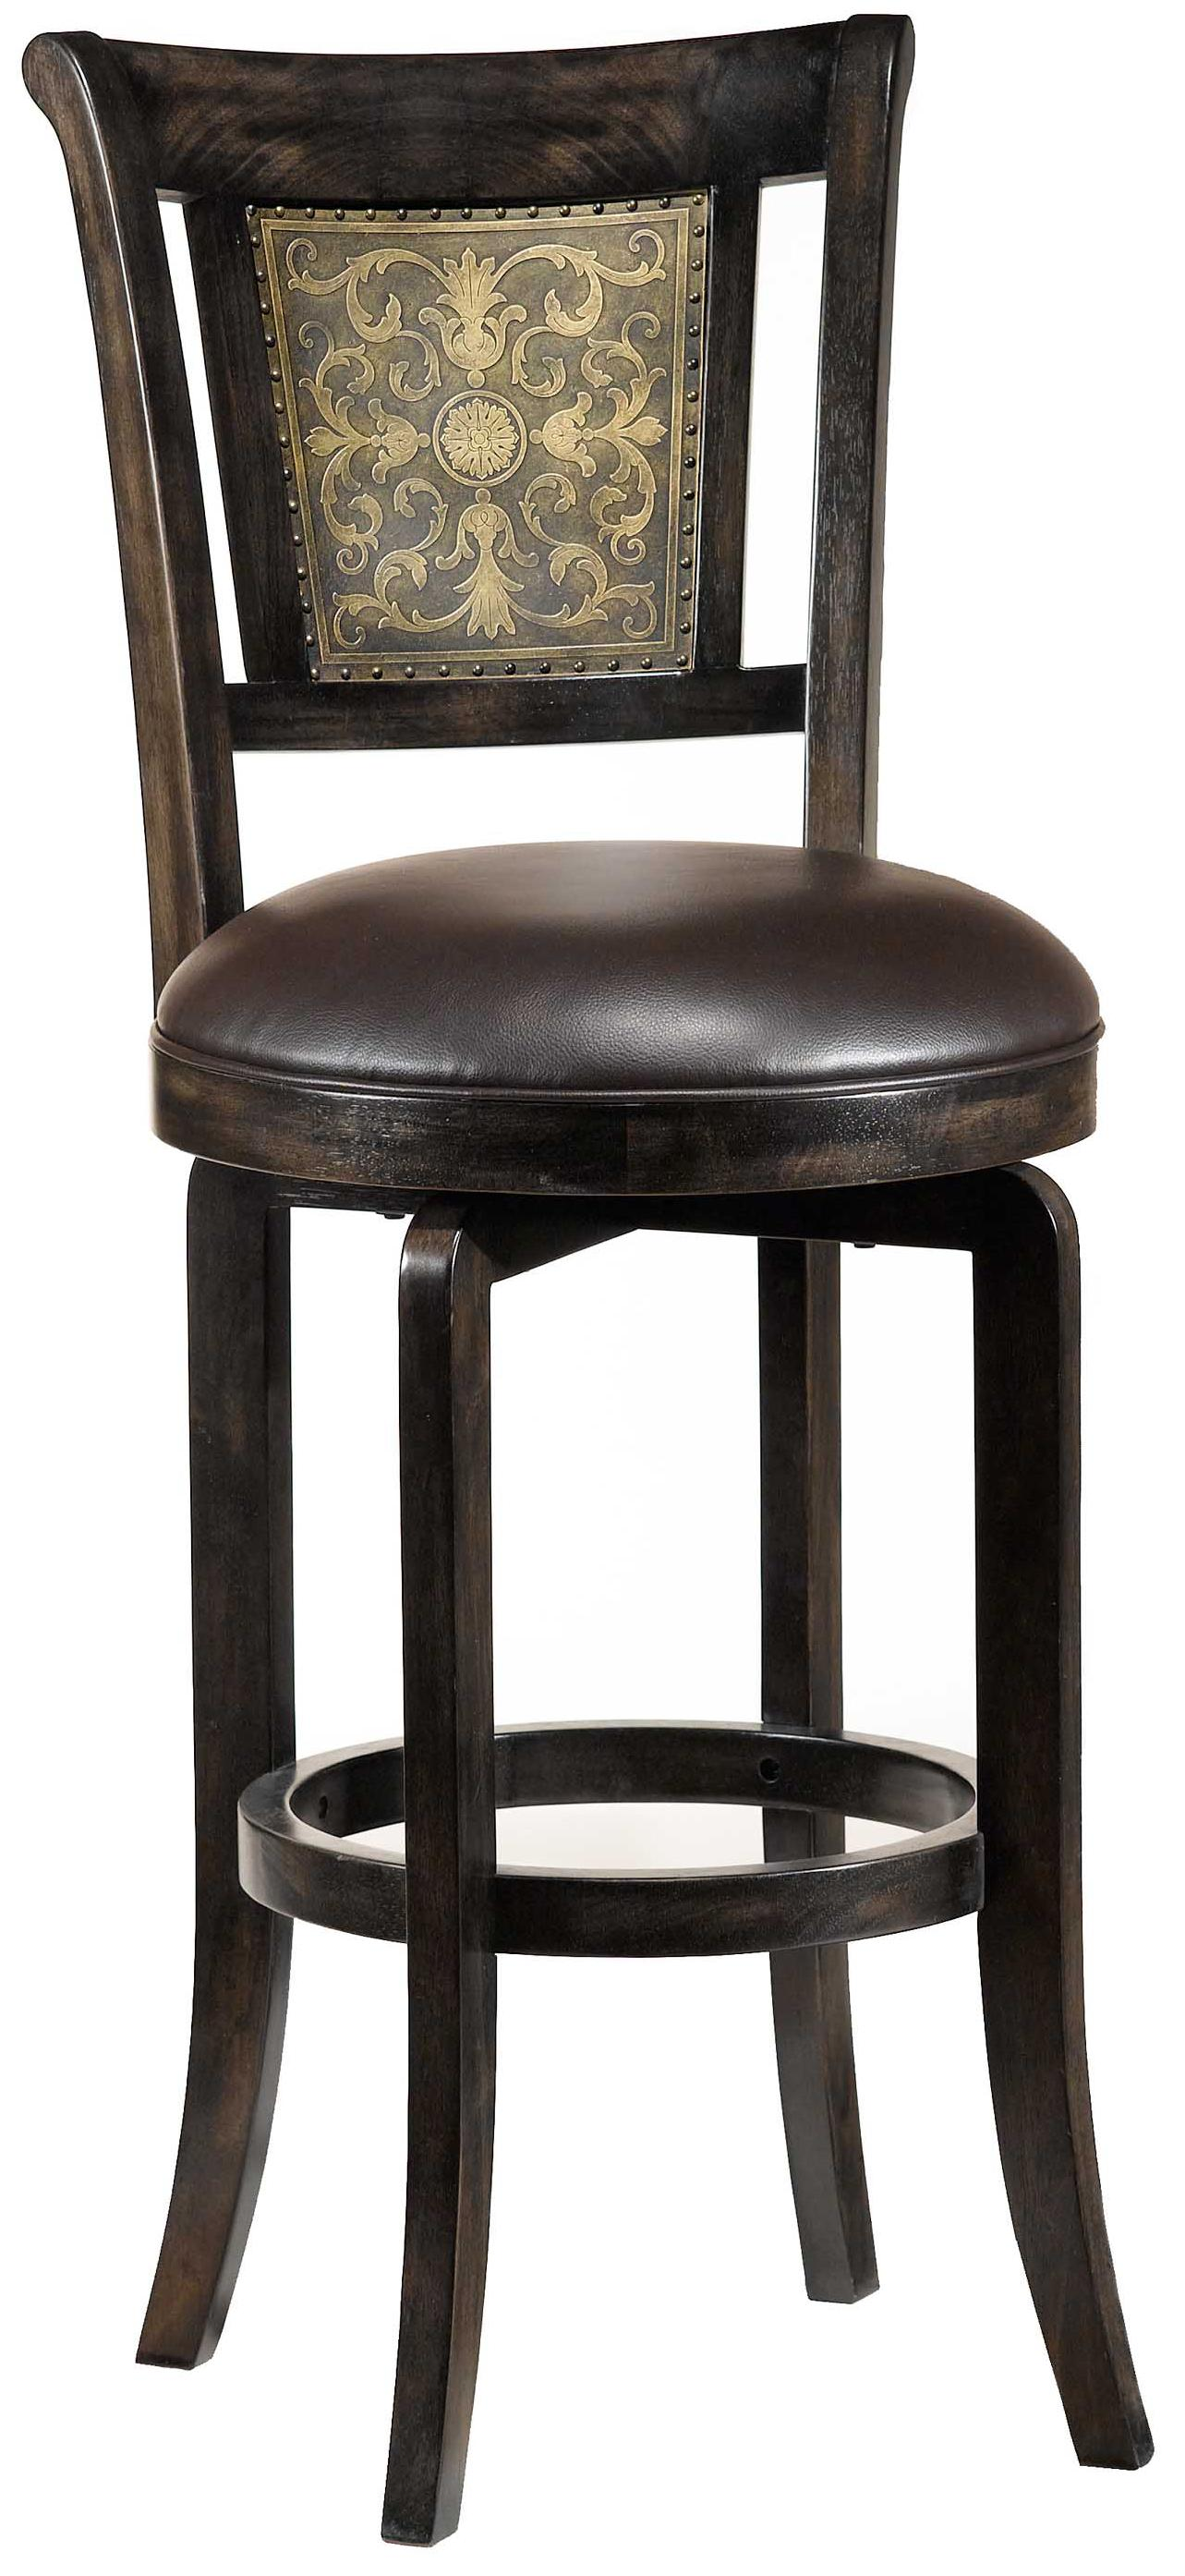 "Hillsdale Wood Stools 26.5"" Counter Height Camille Swivel Stool - Item Number: 4861-826S"